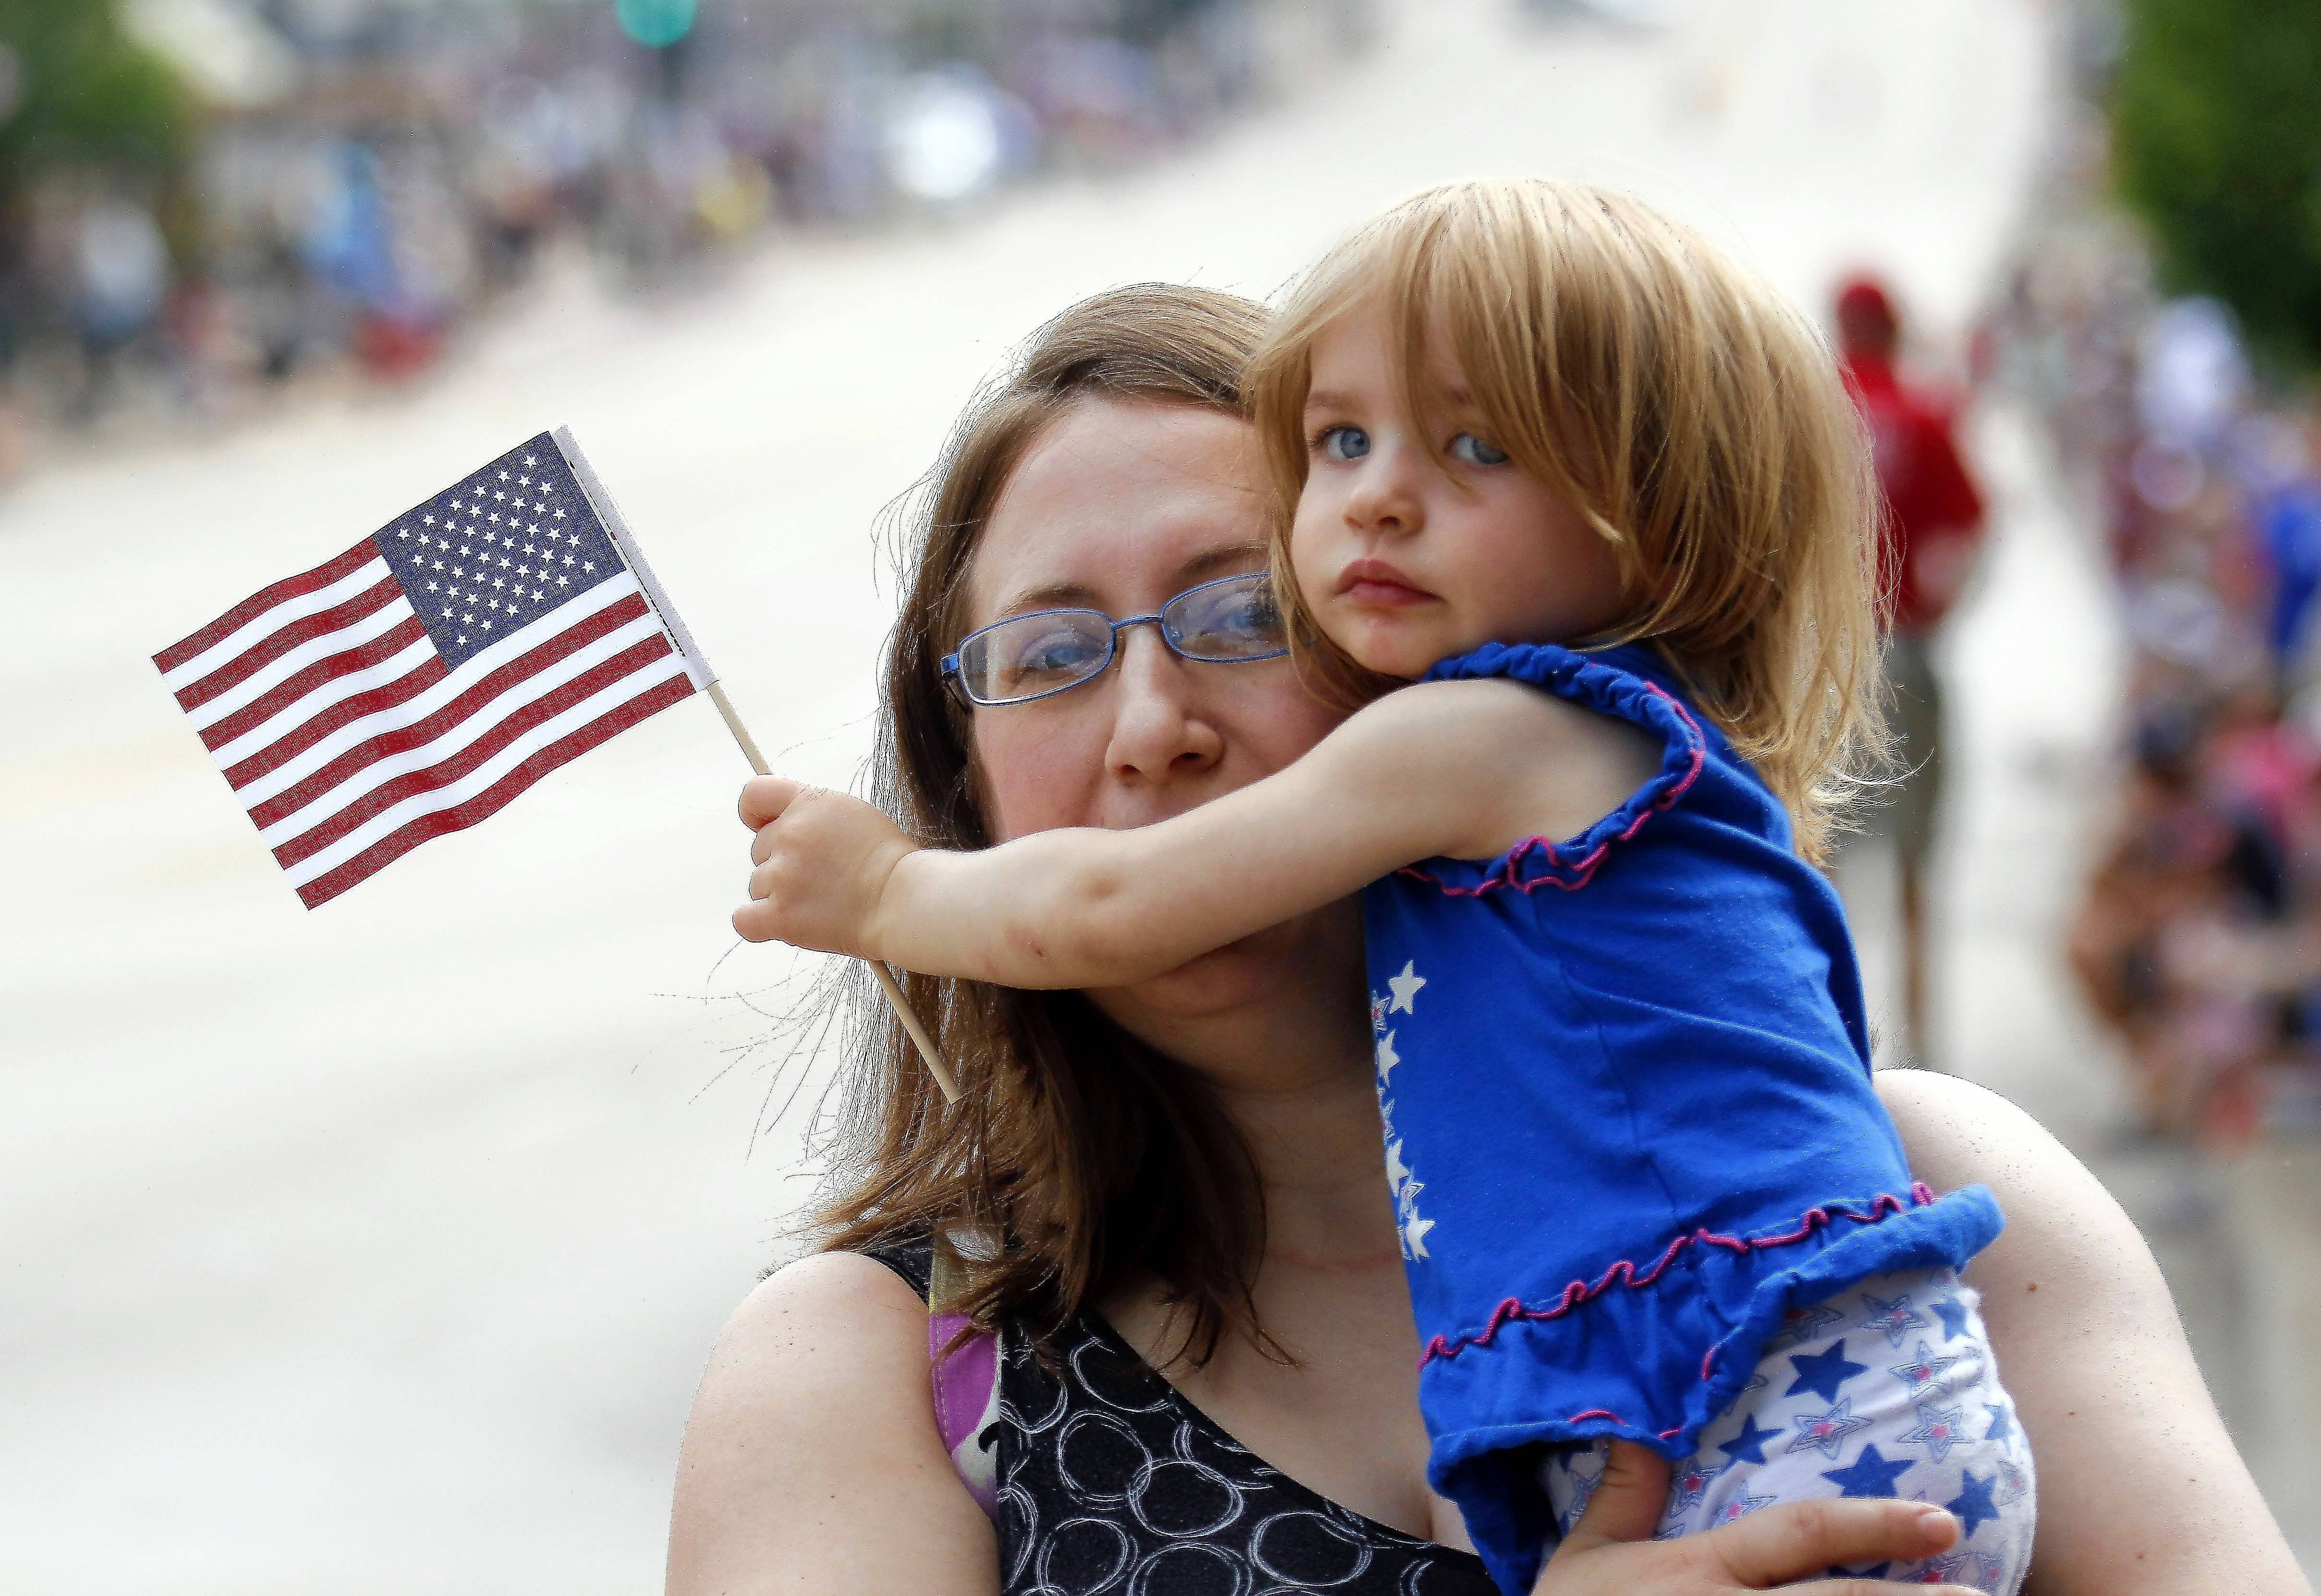 Julia Fredres of Elburn holds on tight to her daughter Abby during last year's Memorial Day parade in St. Charles. This year's parade steps off at 10 a.m. Monday, May 27.